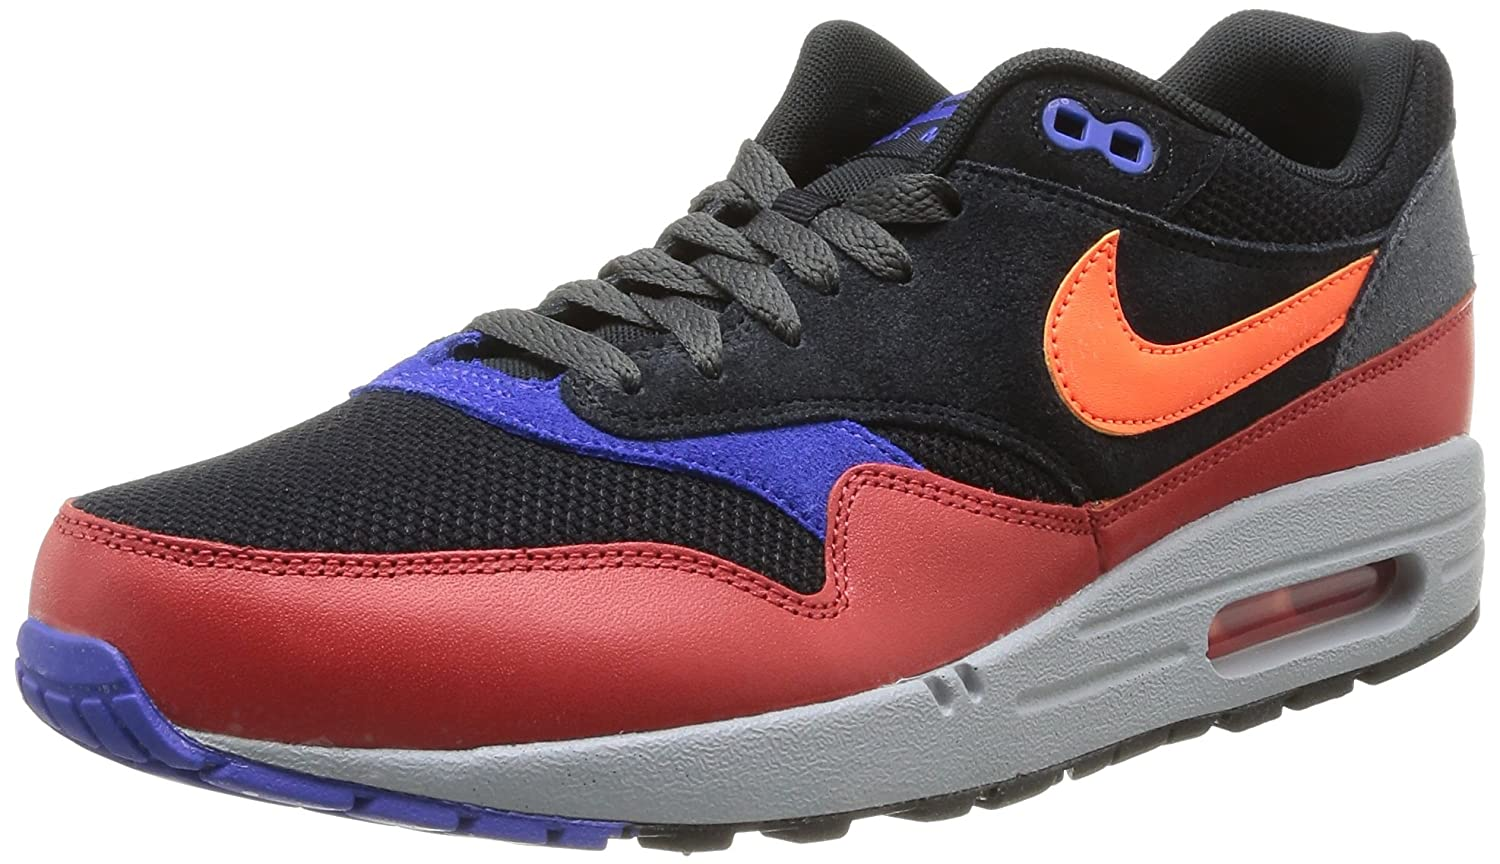 uk availability 84971 1e9e1 Amazon.com  Nike SPEEDLAX II (MENS)  Shoes